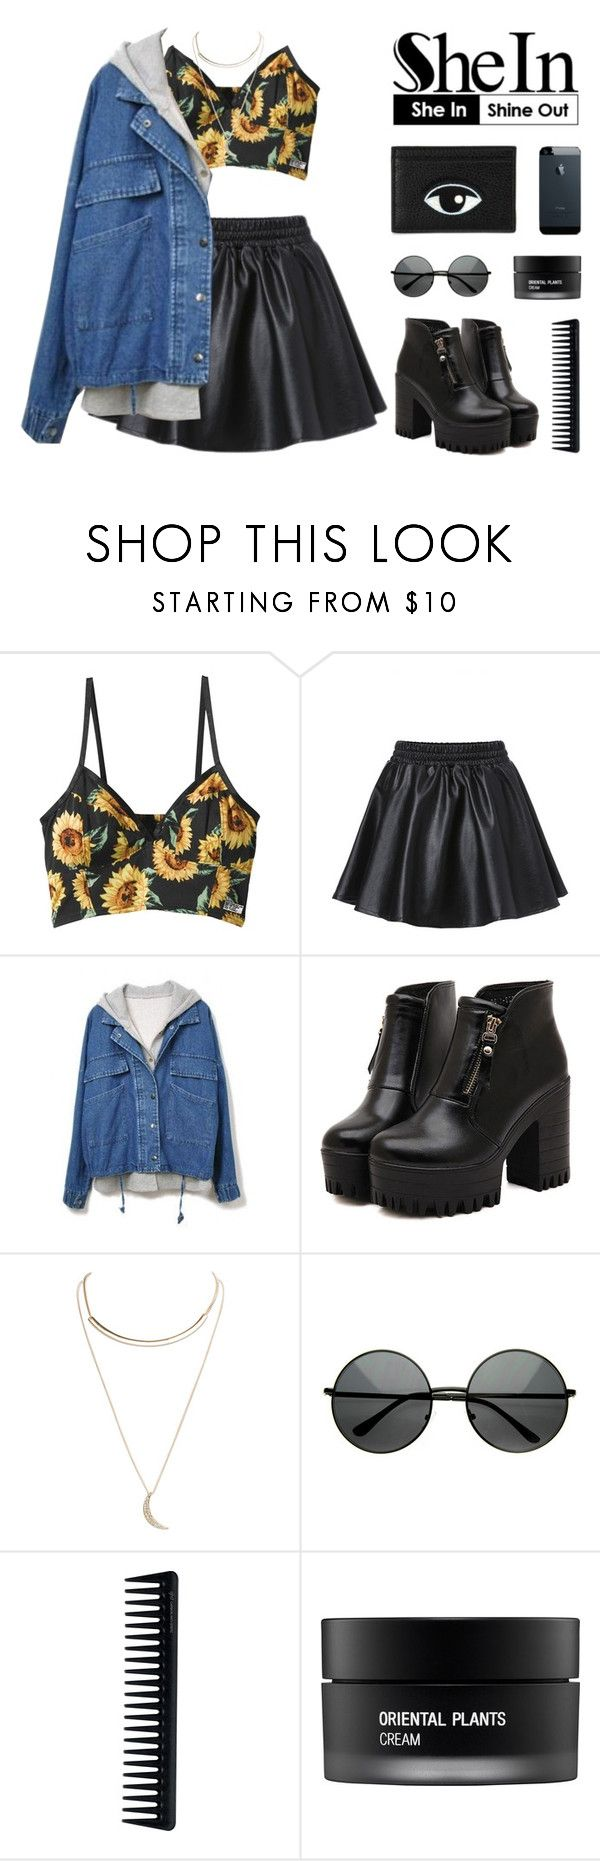 """""""O9.23.15   first day of autumn & SheIn"""" by carechristine ❤ liked on Polyvore featuring Dr. Martens, Wet Seal, GHD and Koh Gen Do"""